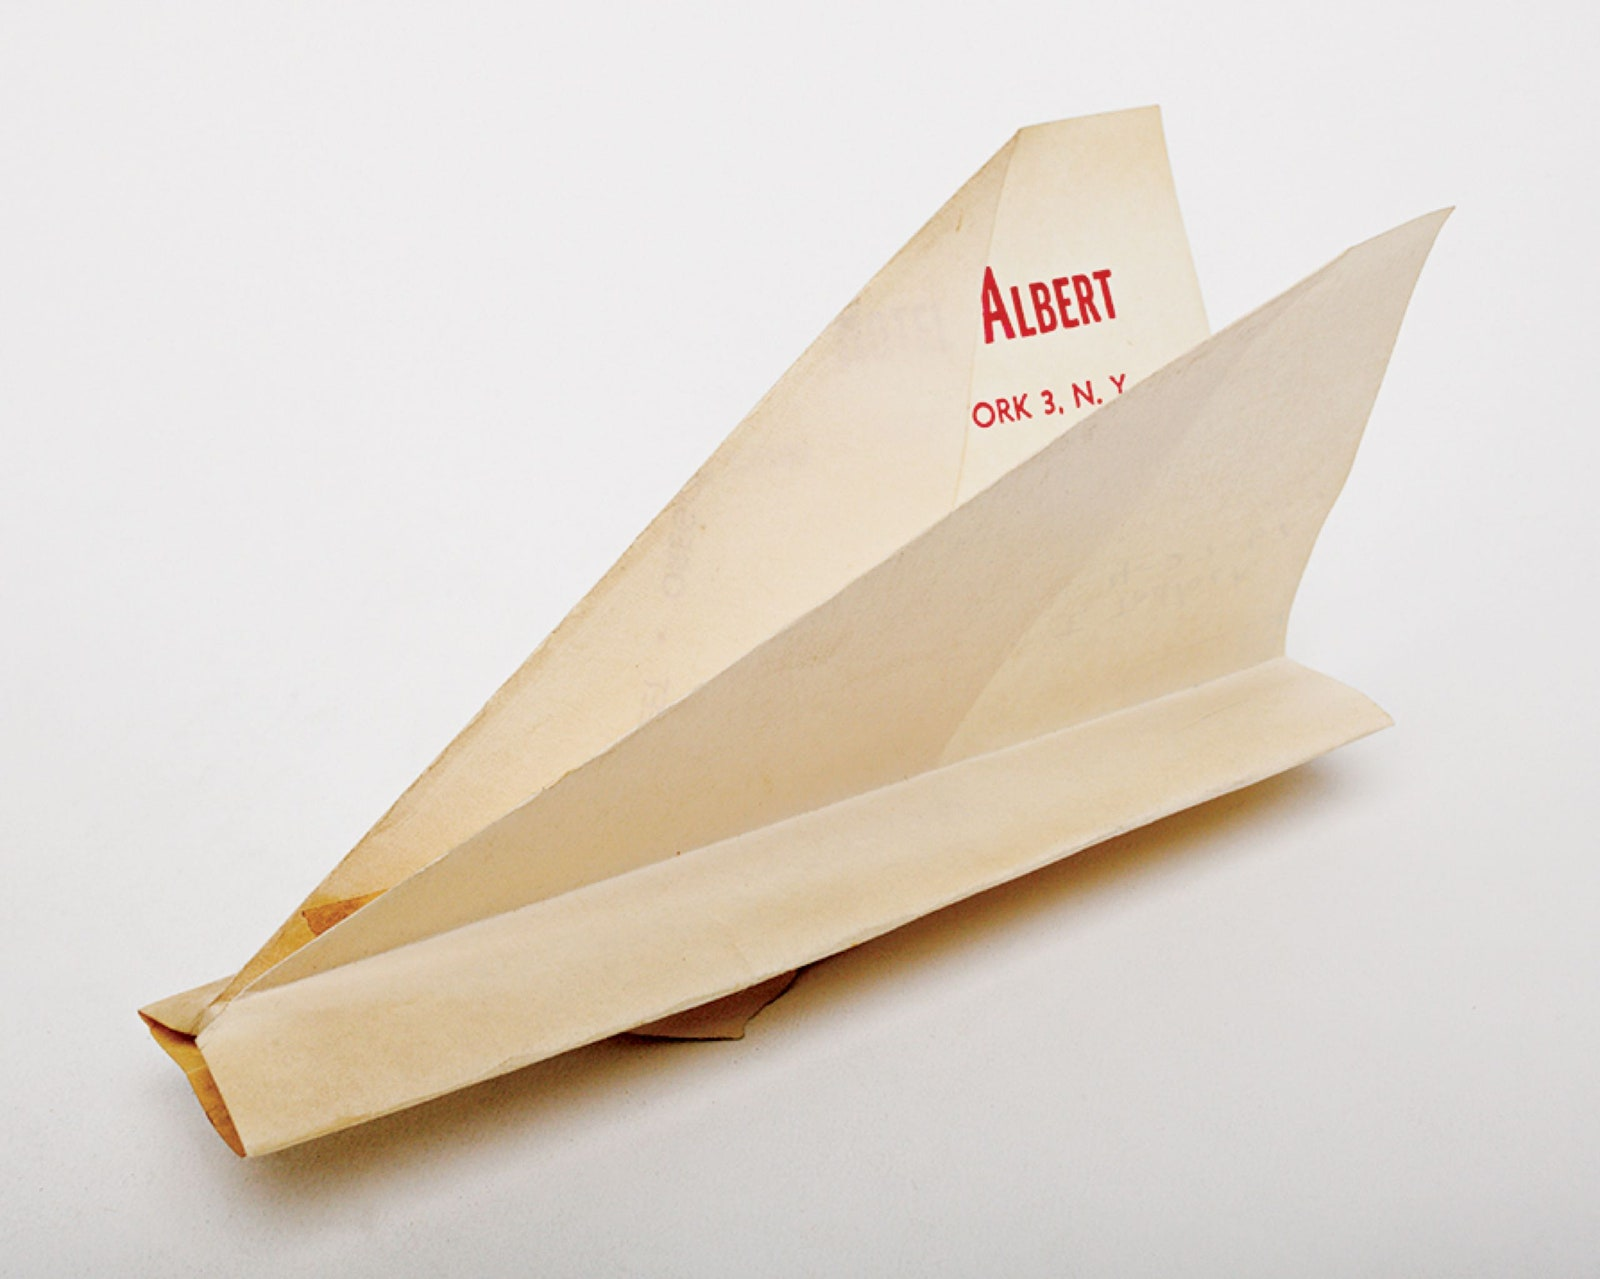 harry-everett-smith-paper-airplane-everythingwithatwist-09